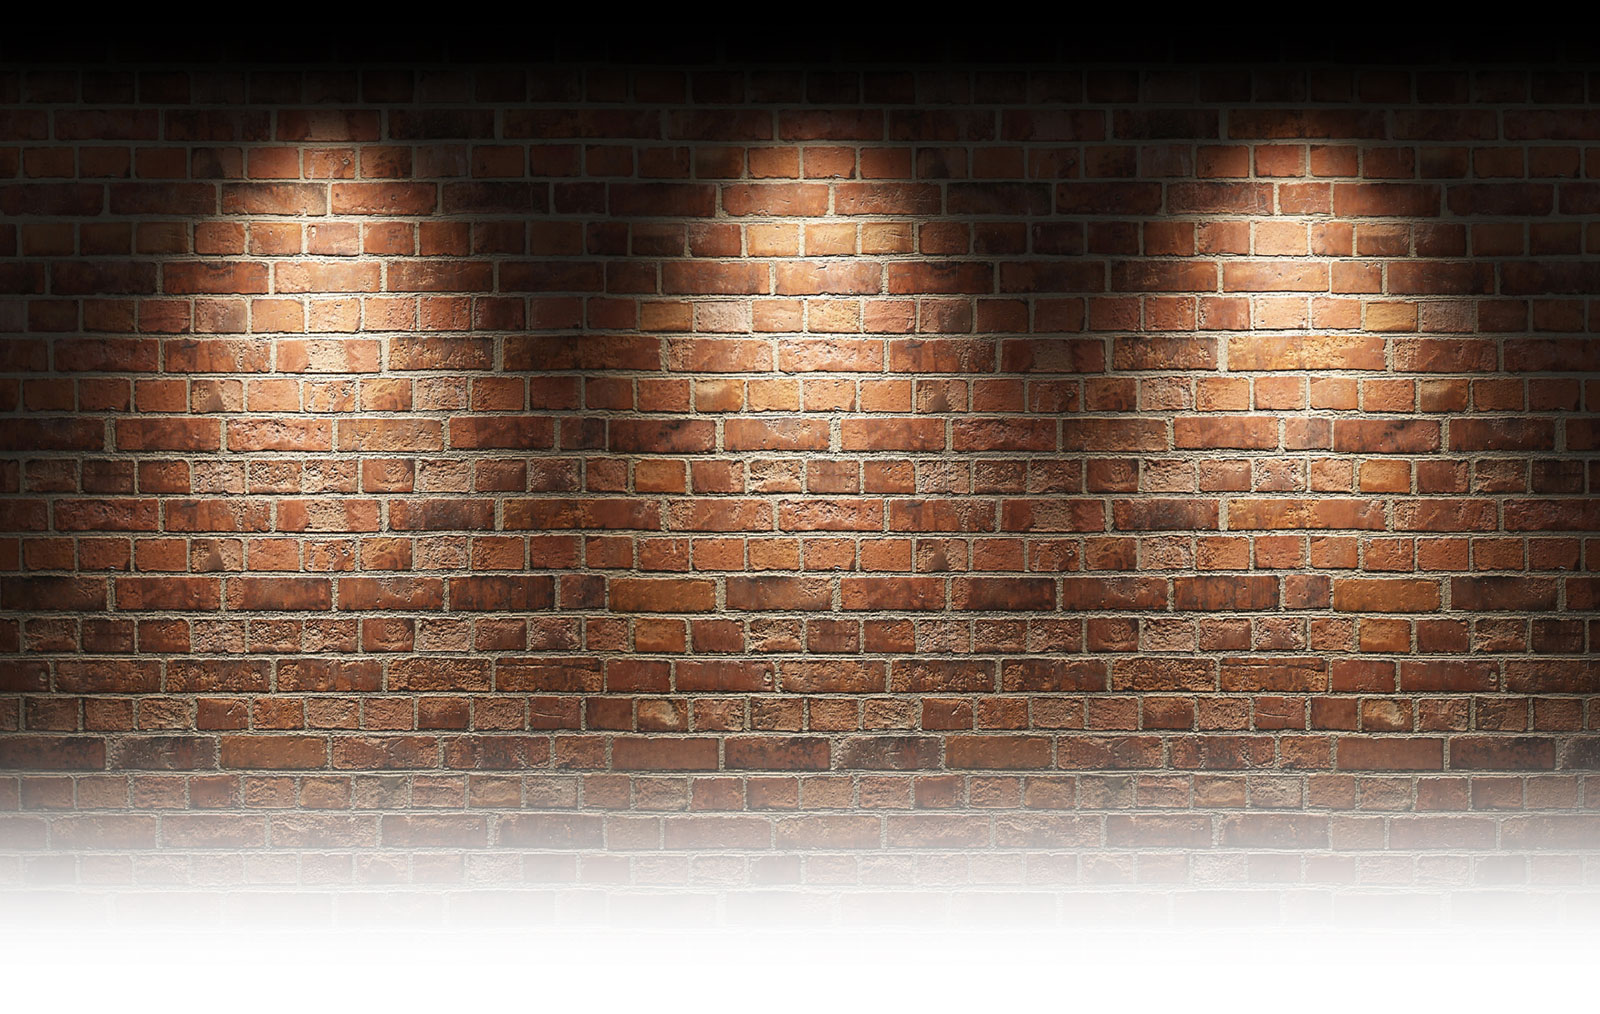 White Brick Wall Lights : Brick wall lights - 10 essential components outdoor and indoor living Warisan Lighting